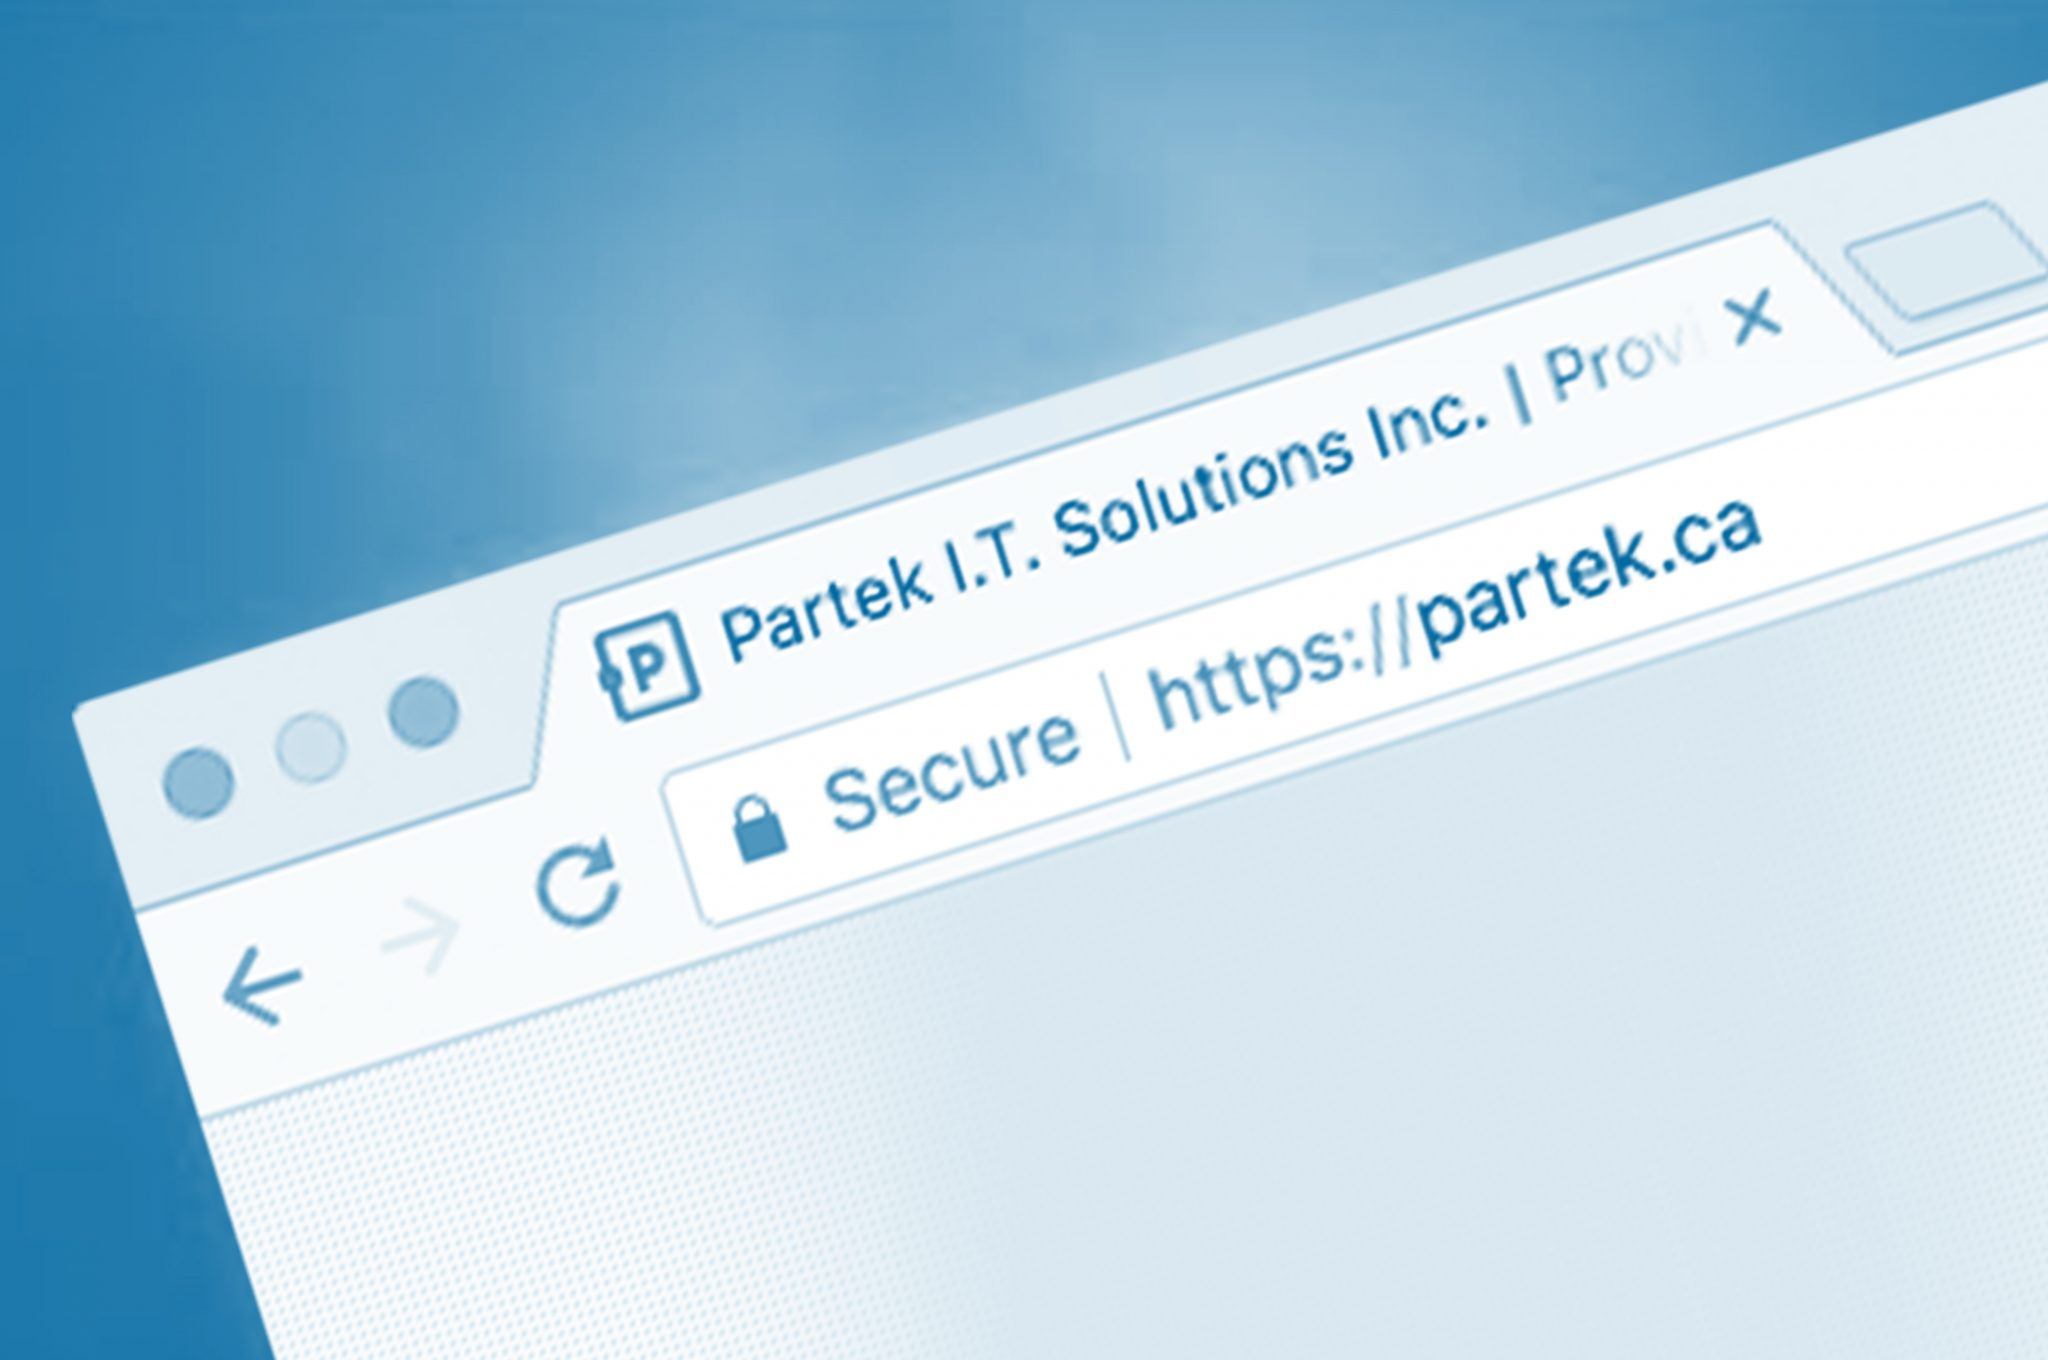 Why Do I Need An Ssl Certificate For My Website Partek